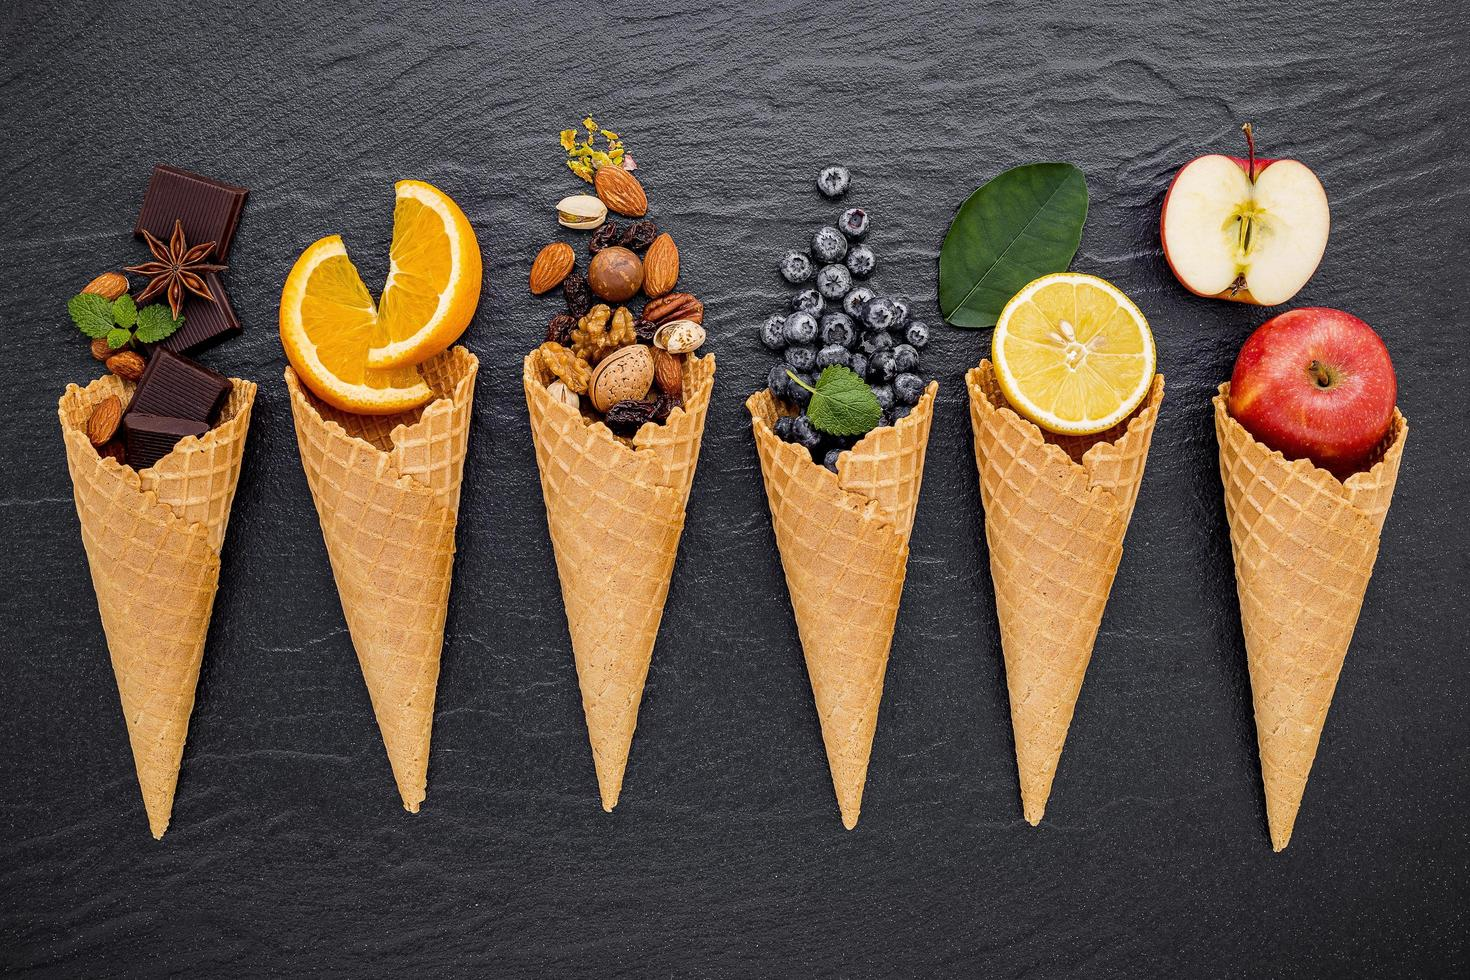 Fruit, nuts and chocolate with ice cream cones on a dark background photo